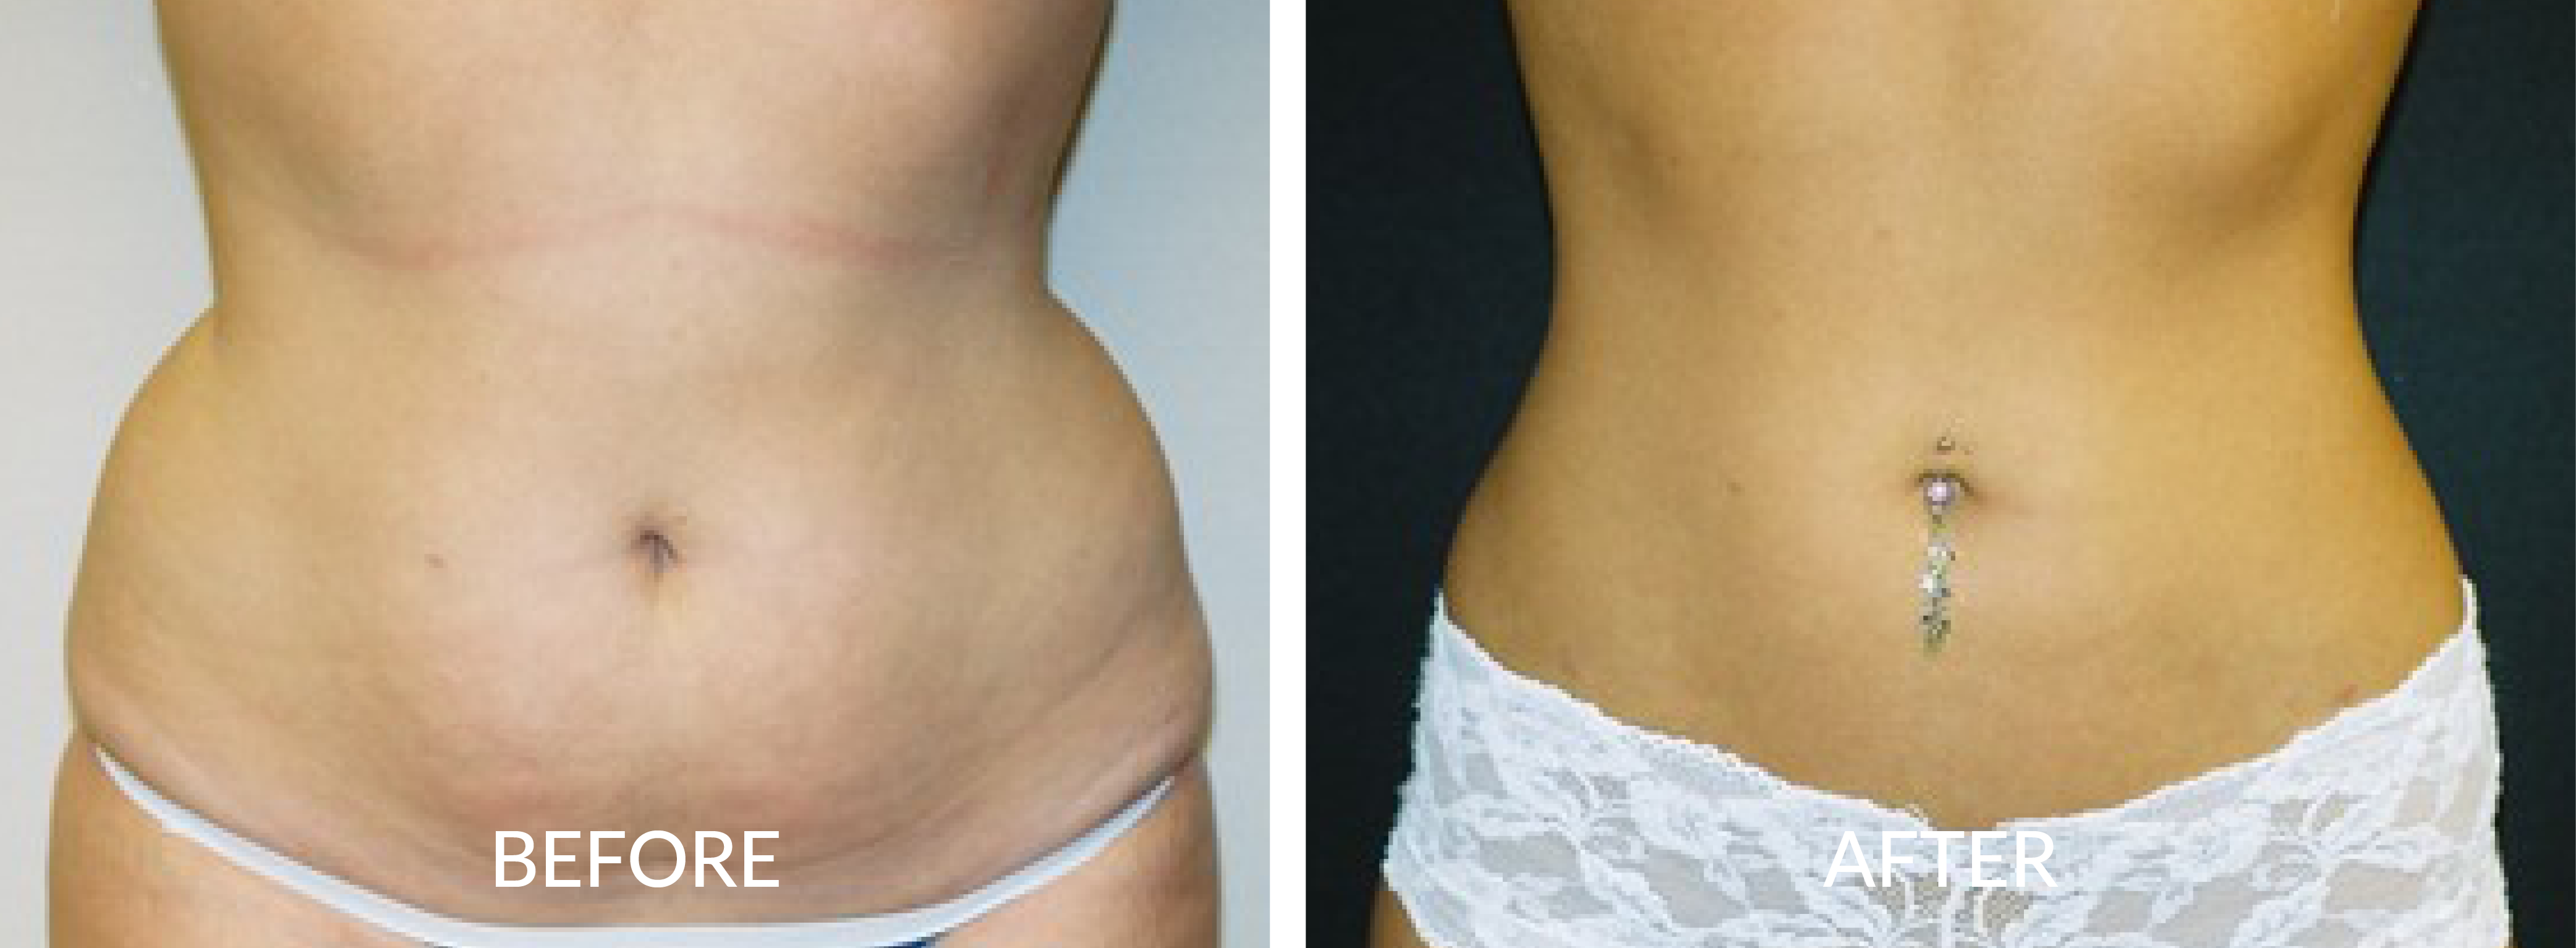 Before & After Liposuction